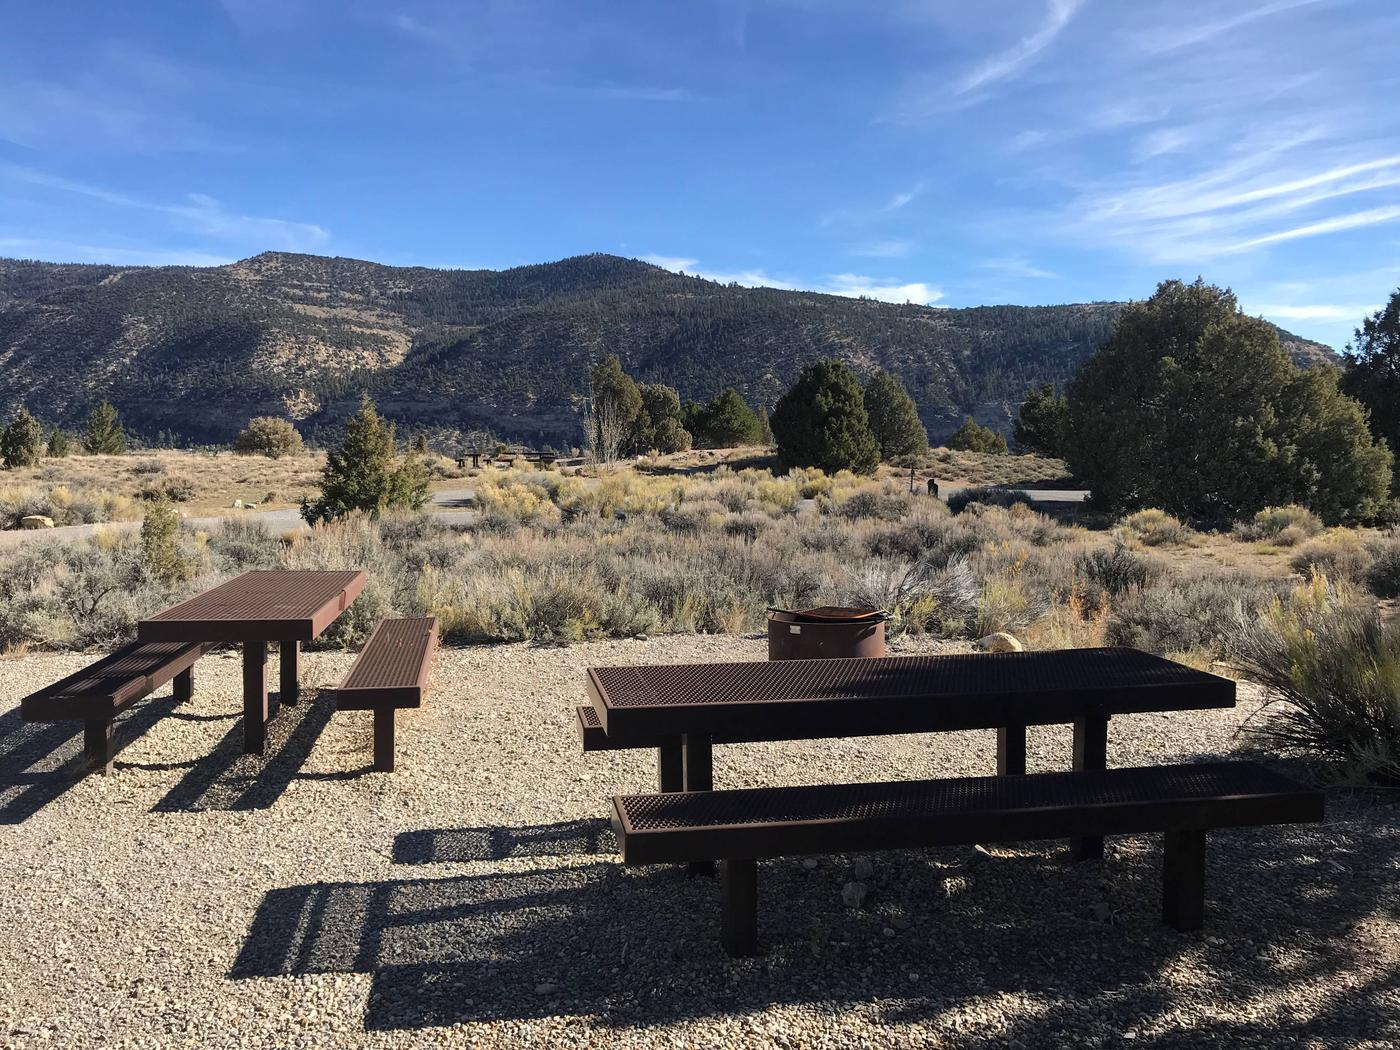 Joes Valley Campground Site 34